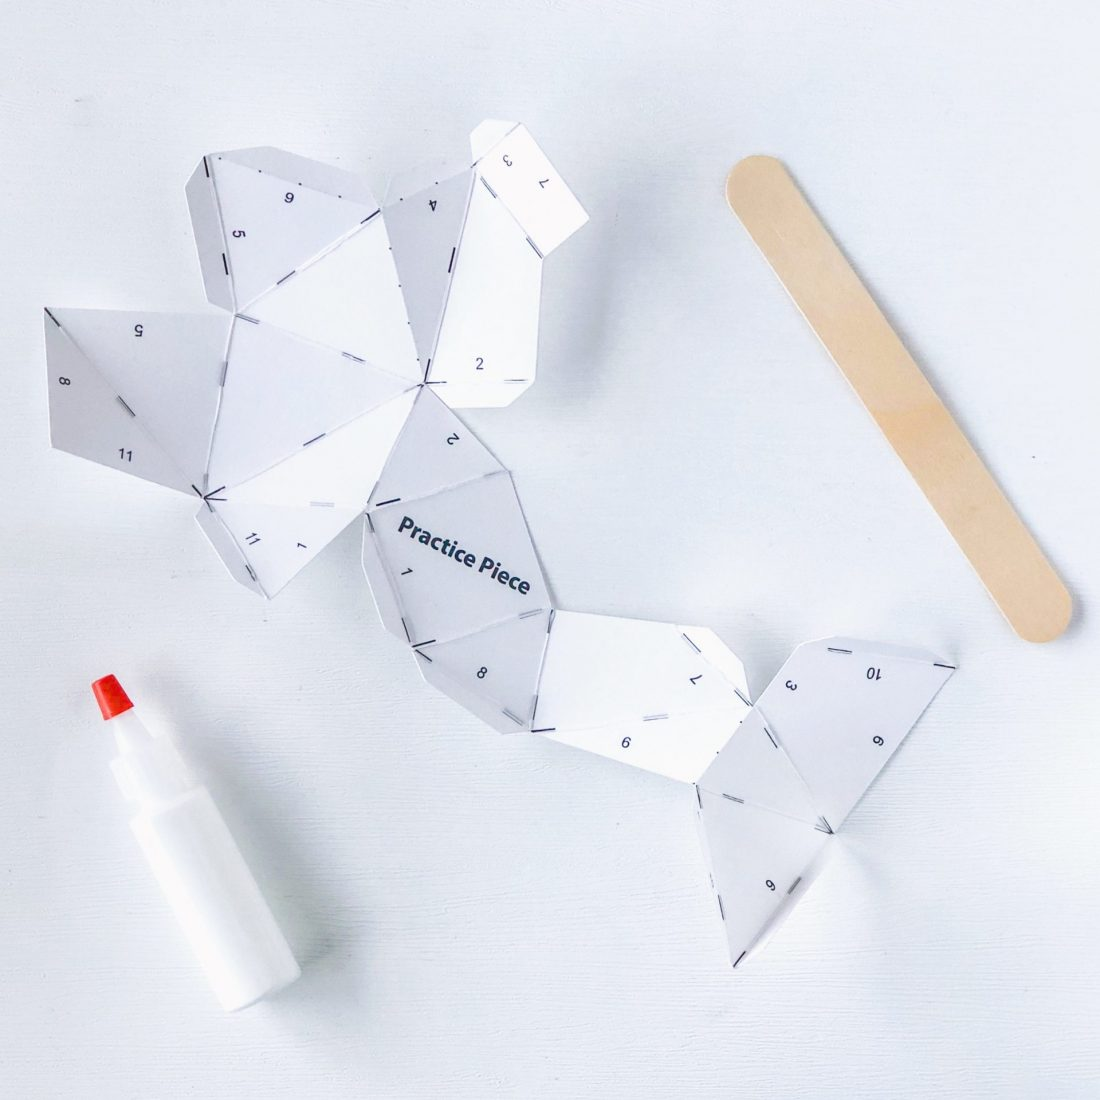 Practice paper whale materials: paper, glue bottle, and tongue depressor